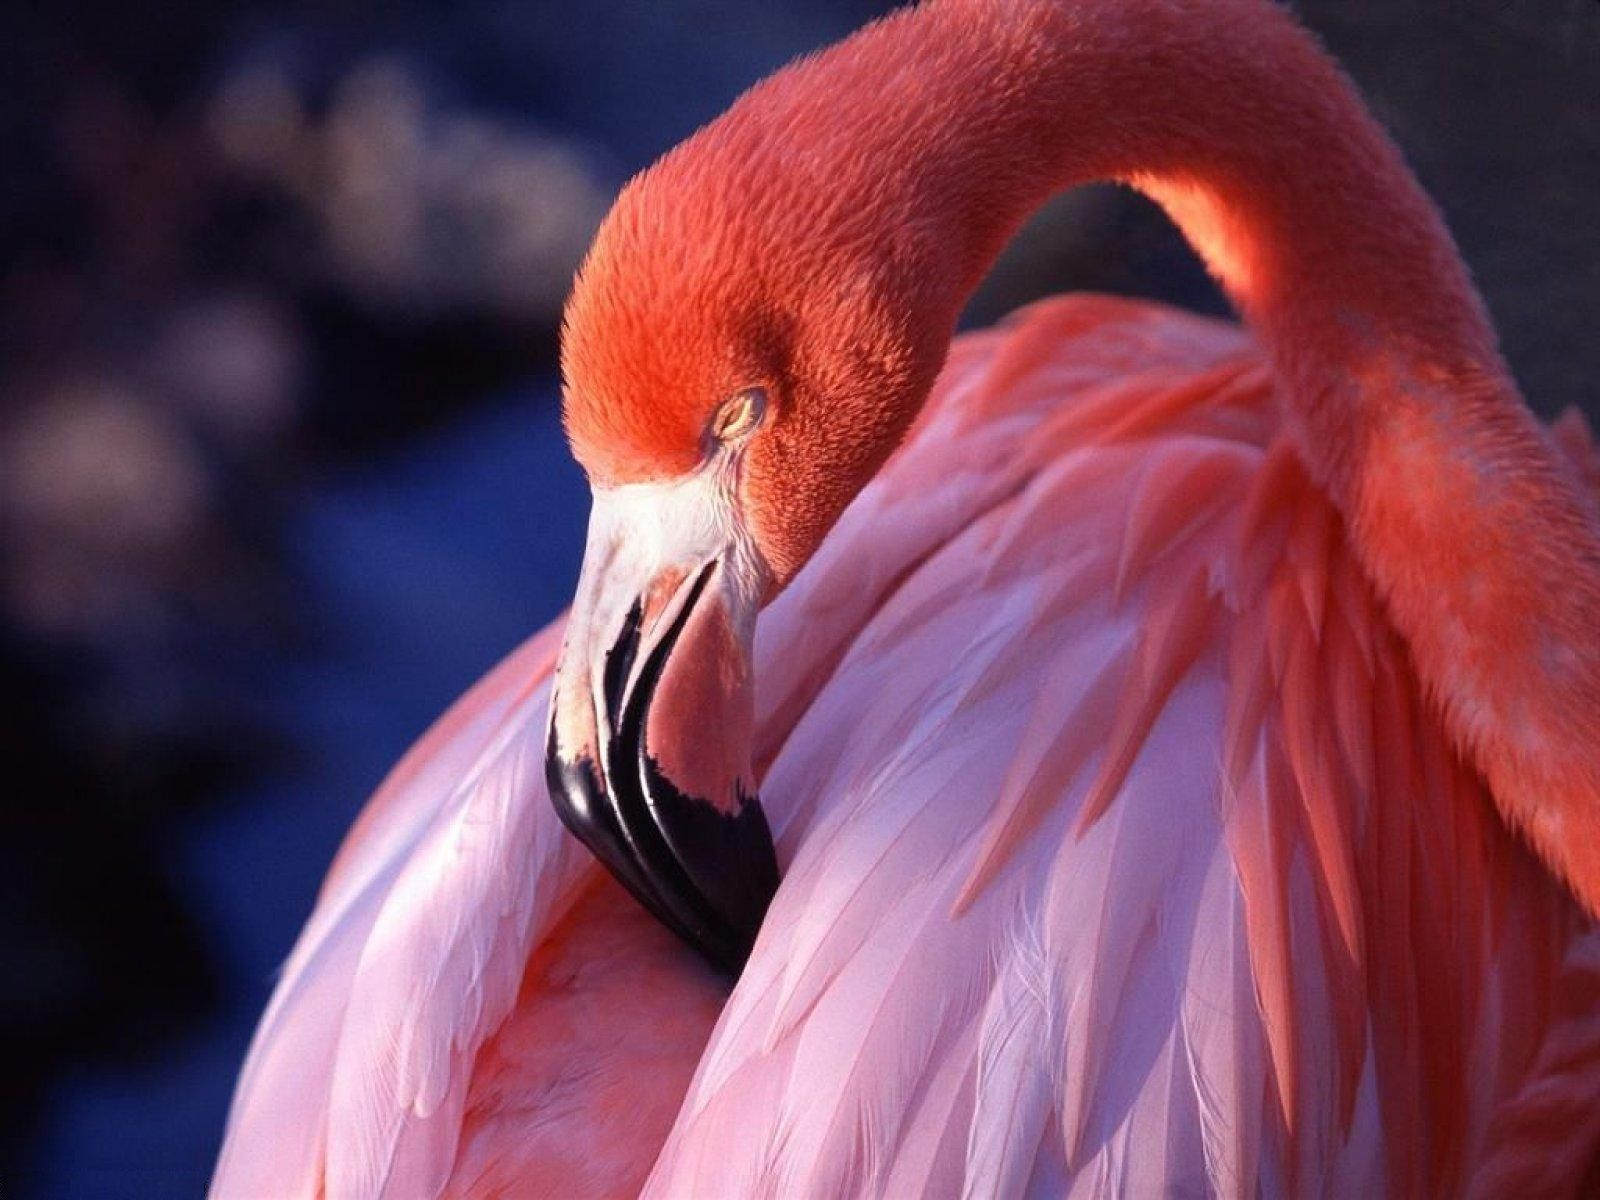 flamingo-bird-feathers-pink-animals-high-definition-wallpaper-for-desktop-background-downlaod-flamingoes-images-free.jpg (1600×1200)